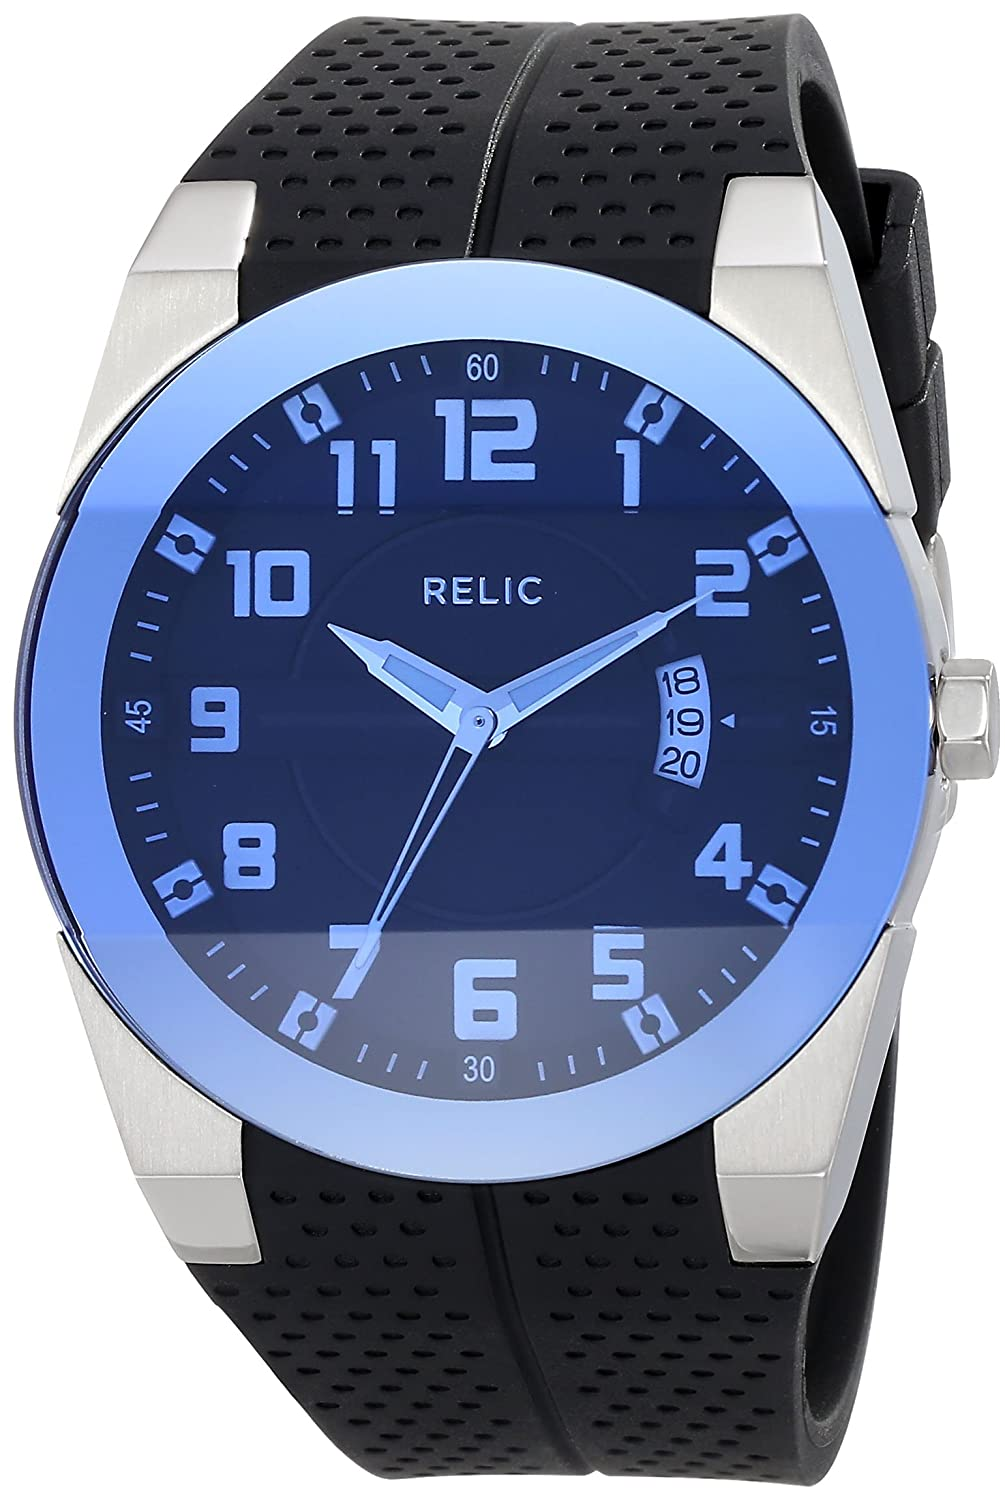 Relic by Fossil Men's Jake Quartz Stainless Steel and Silicone Sport Watch, Color: Silver, Black (Model: ZR11861)